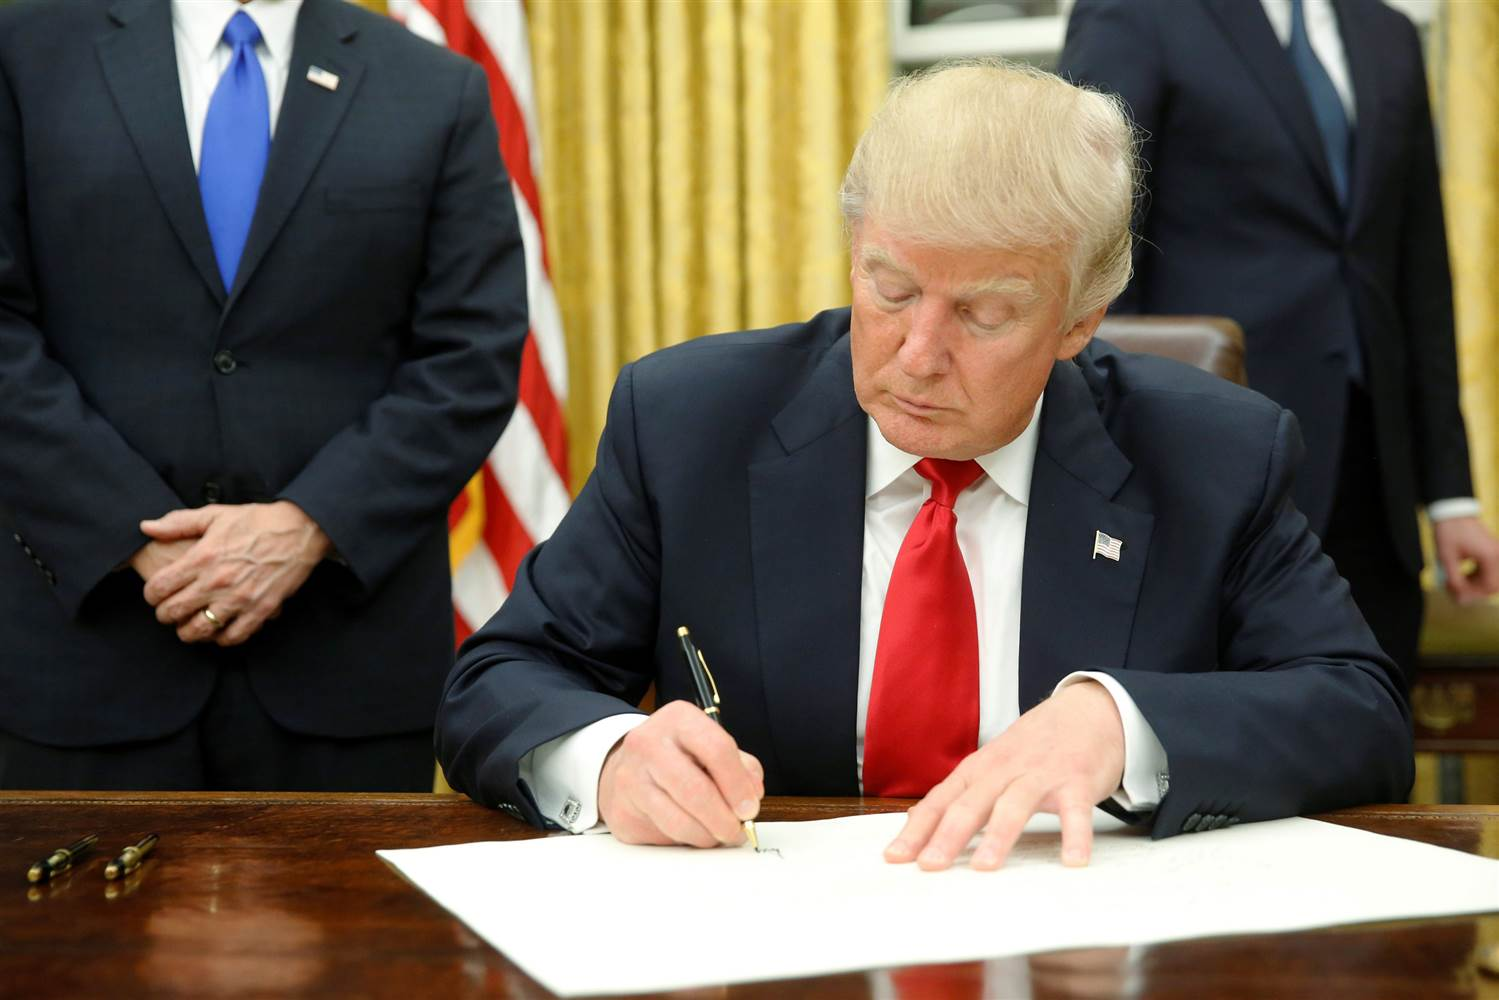 Image result for images of Trump signing executive order